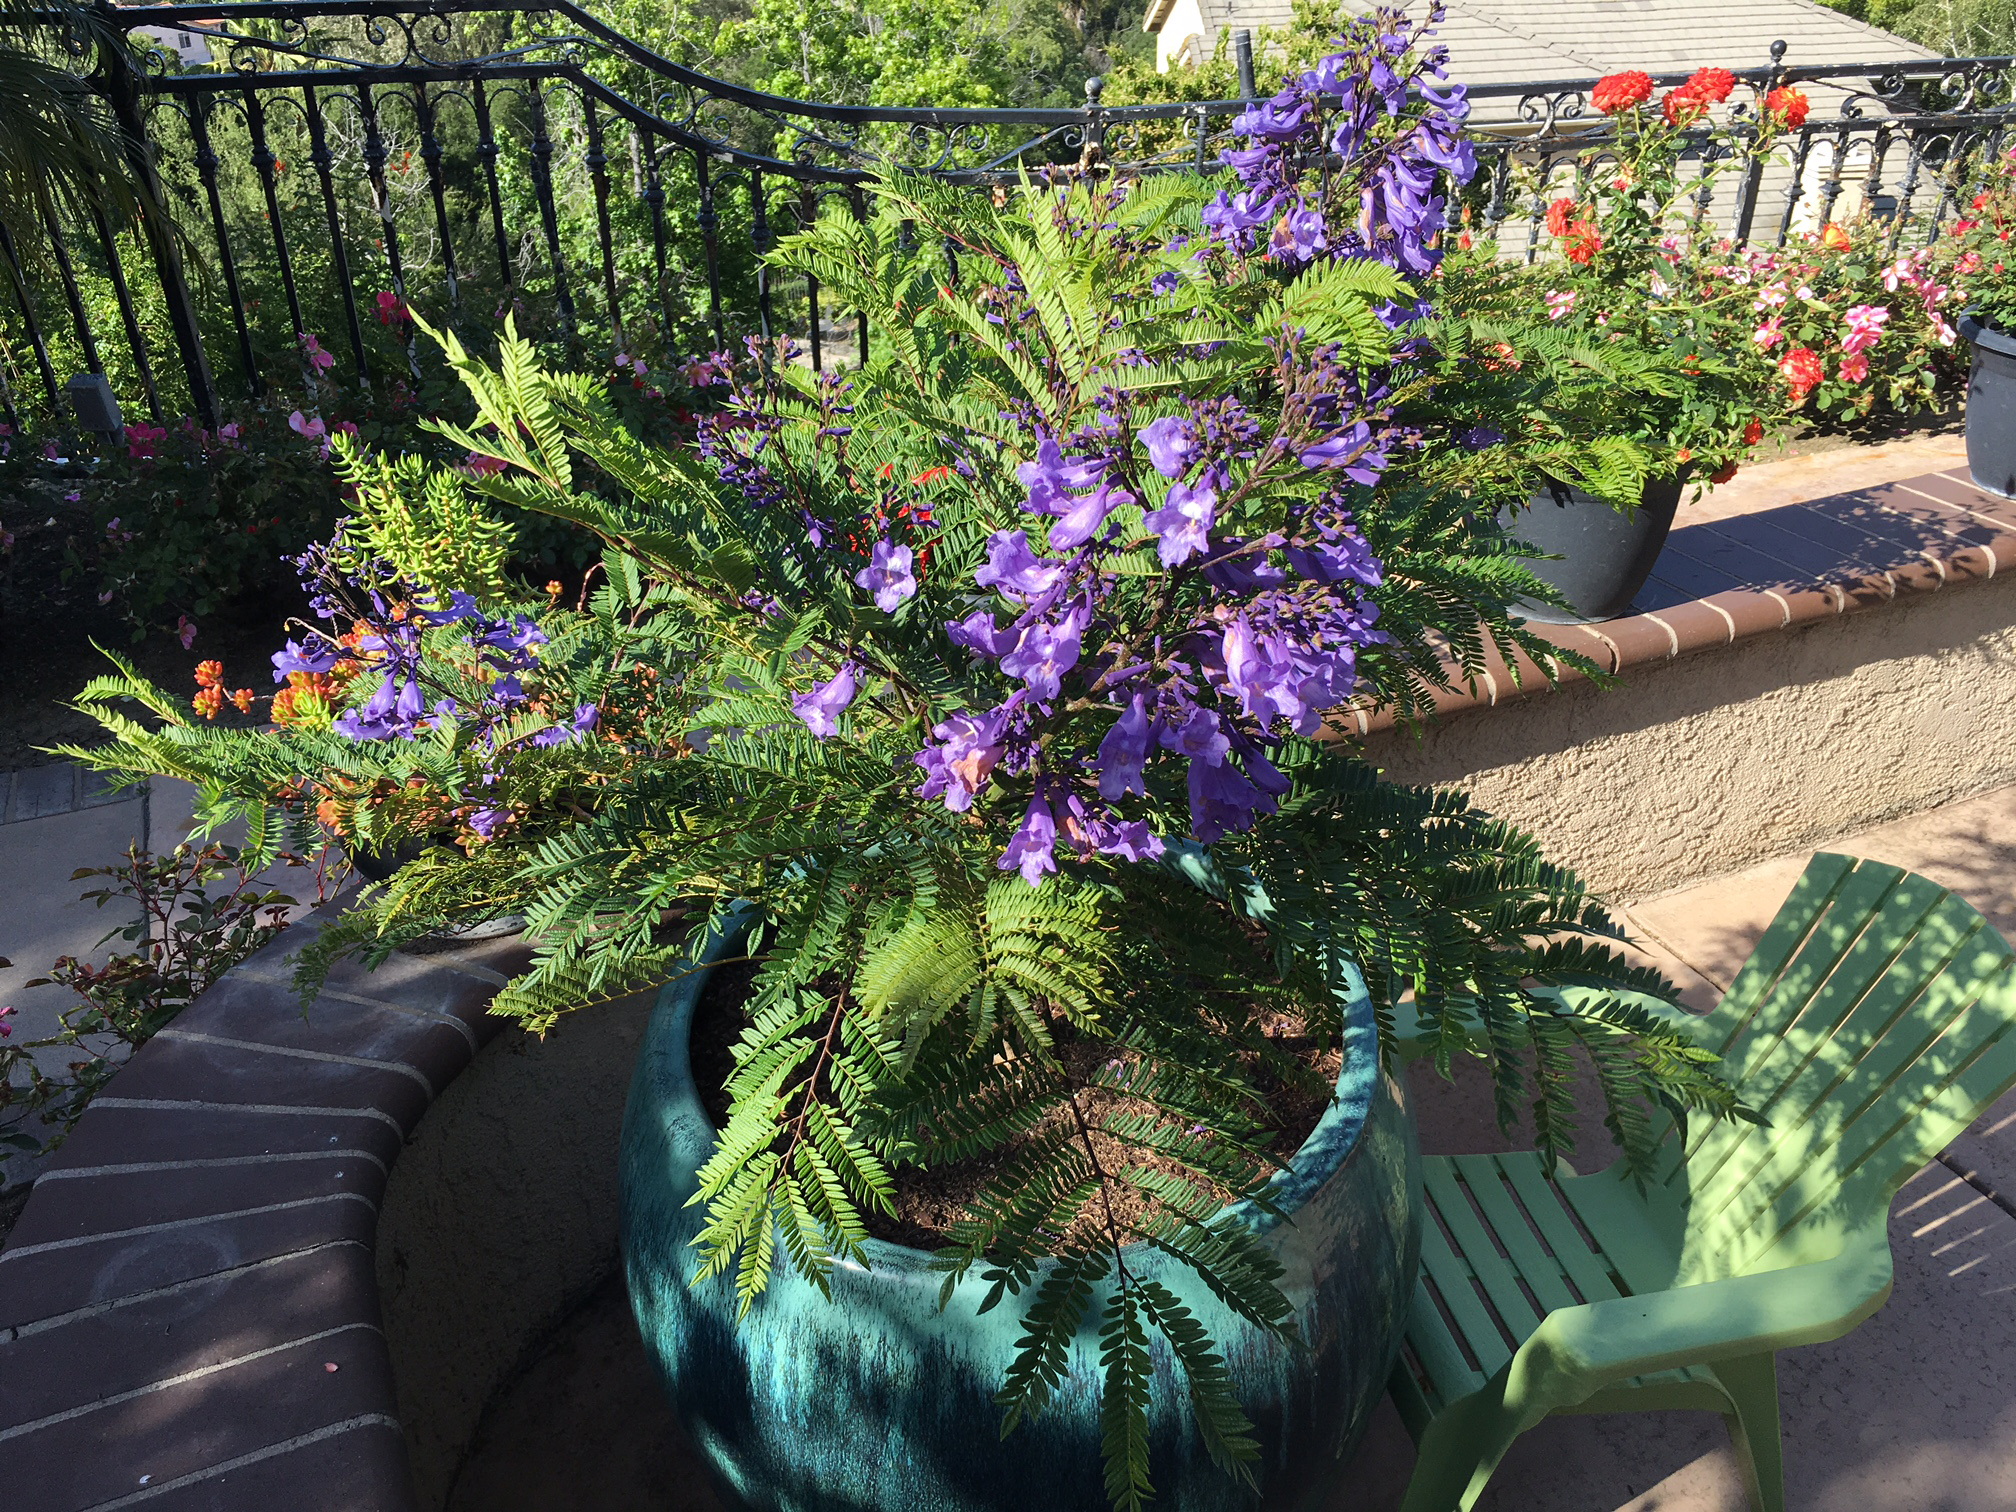 Village Nurseries And Star Roses And Plants Expand Agreement With New Varieties Including World S First Dwarf Jacaranda Business Wire